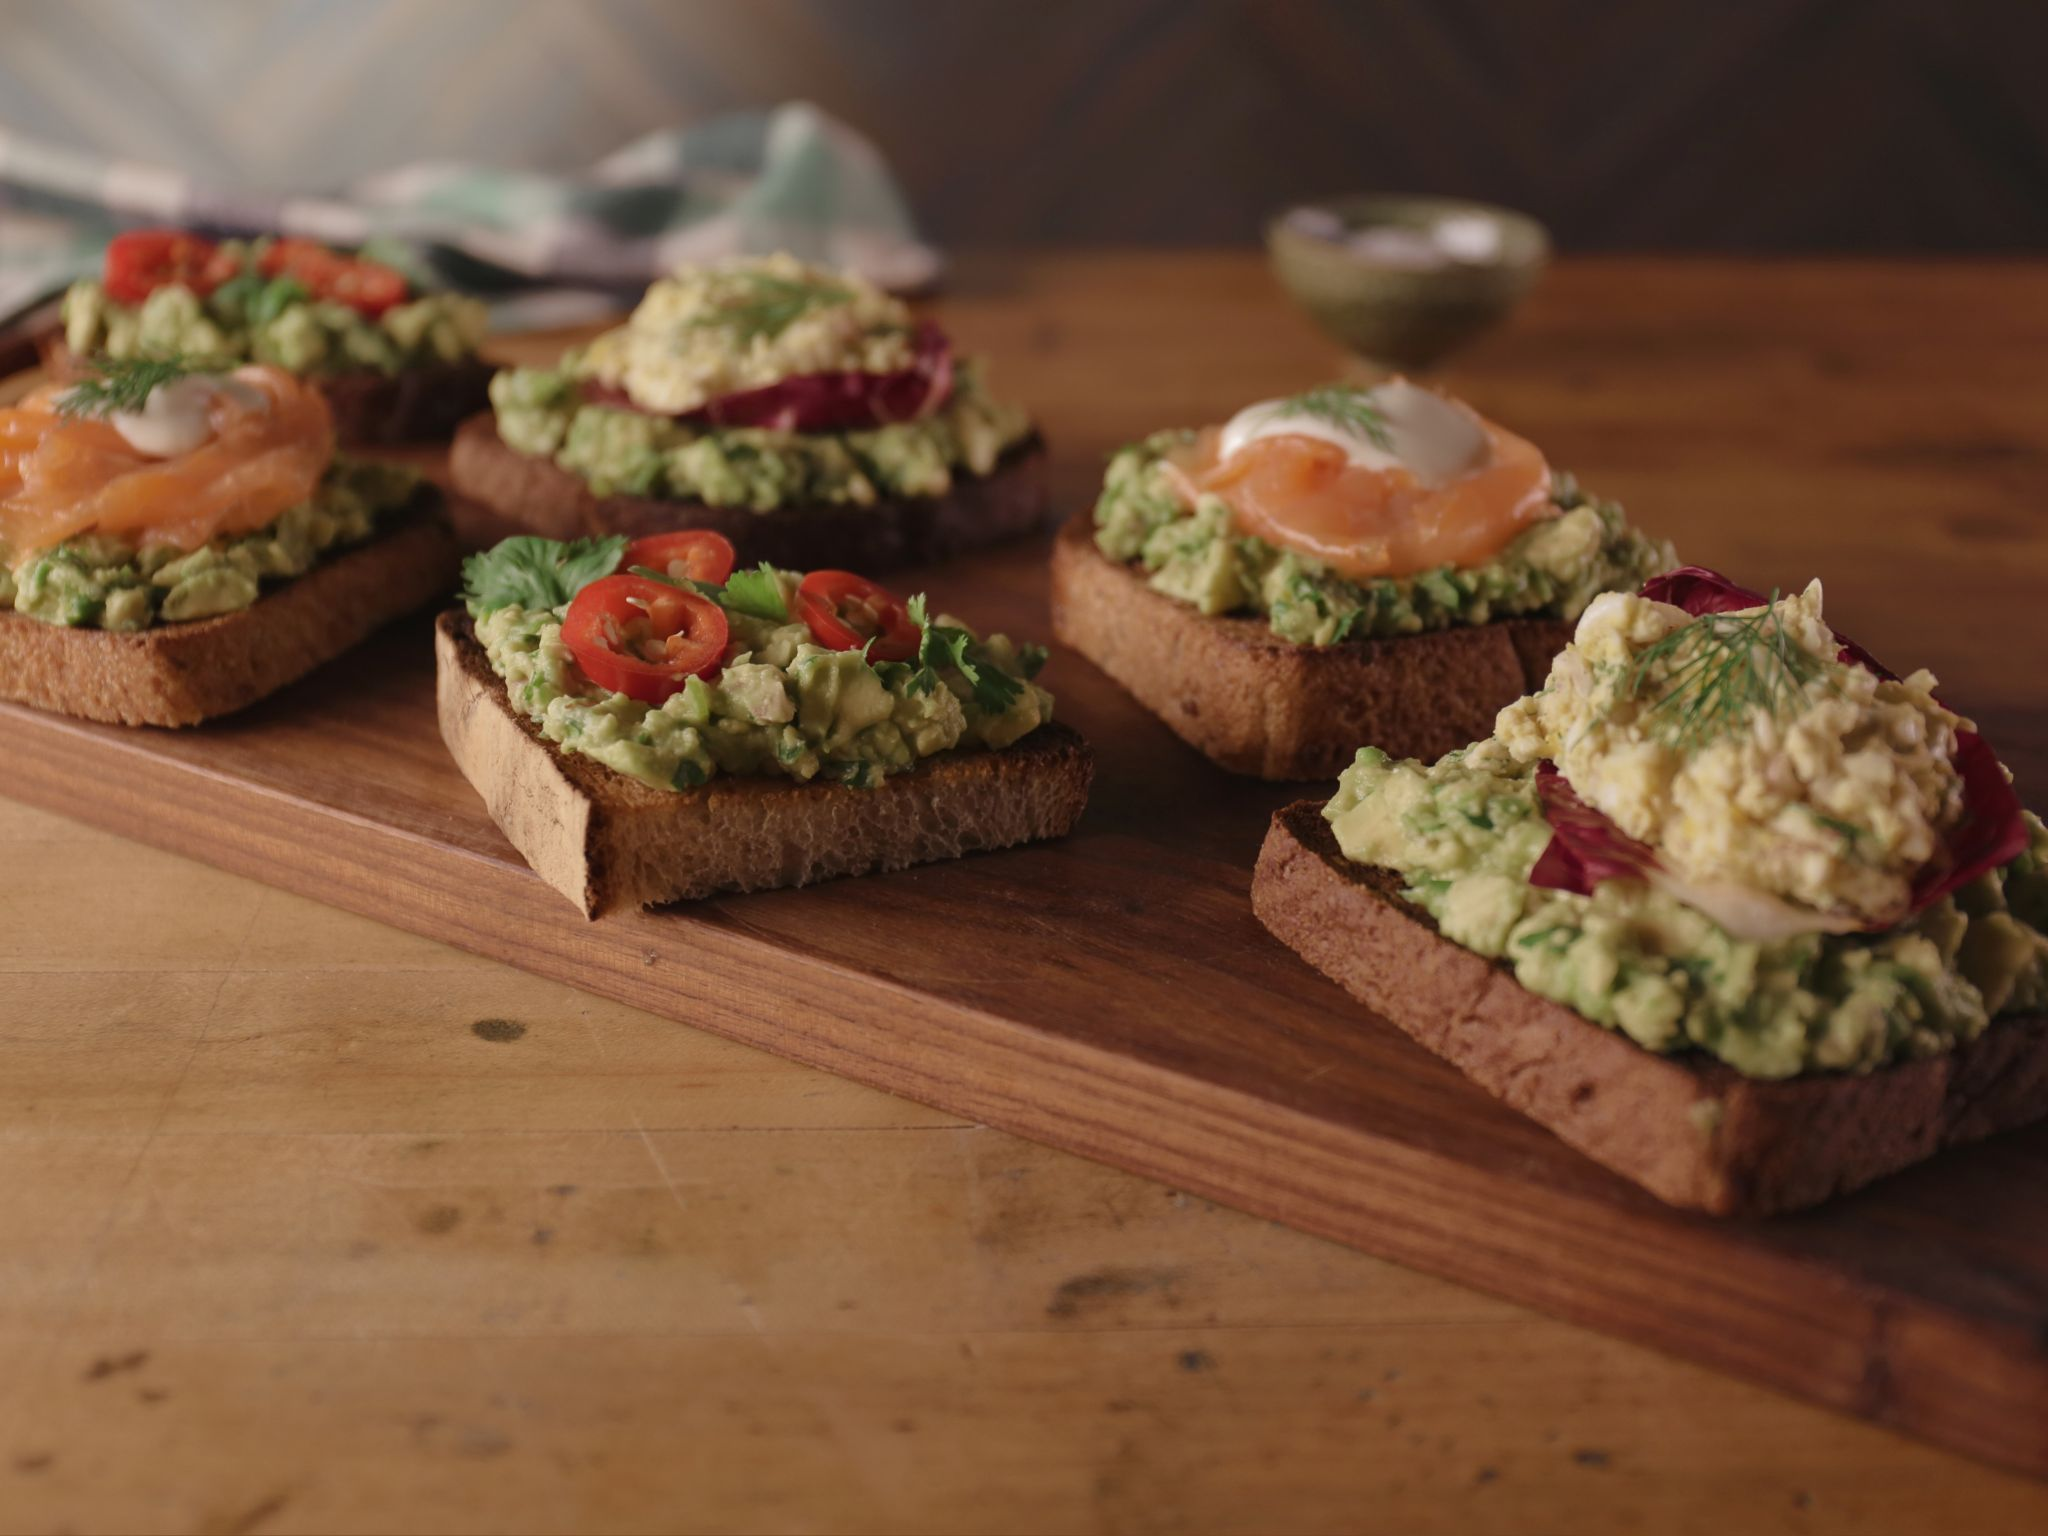 Heathers florida kitchen bobby flays avocado toast three ways bobby flays avocado toast three ways photo courtesy television food network and brunch bobbys forumfinder